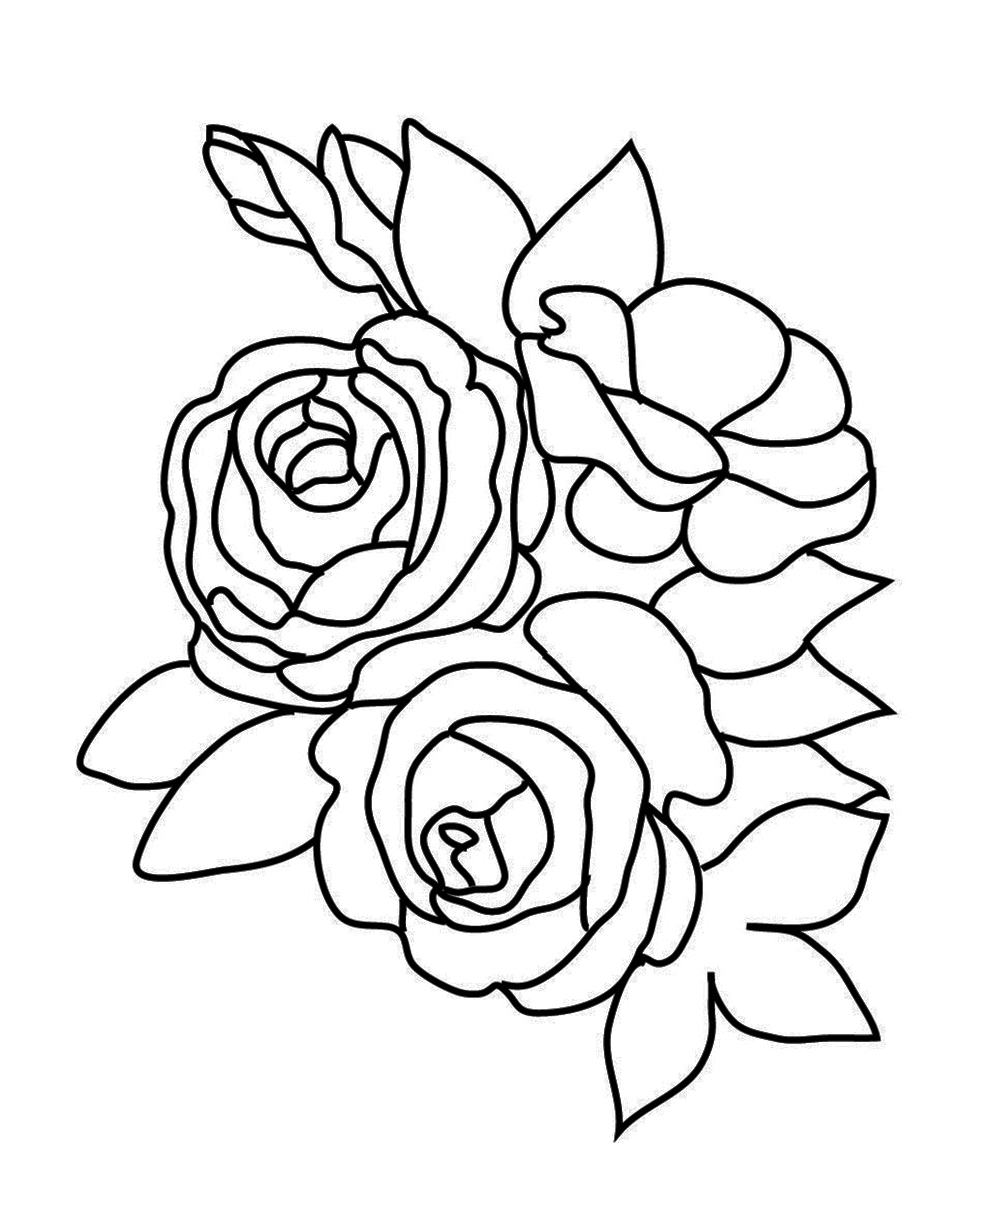 680x472 drawn rose bush leaf 992x1226 flower coloring pages